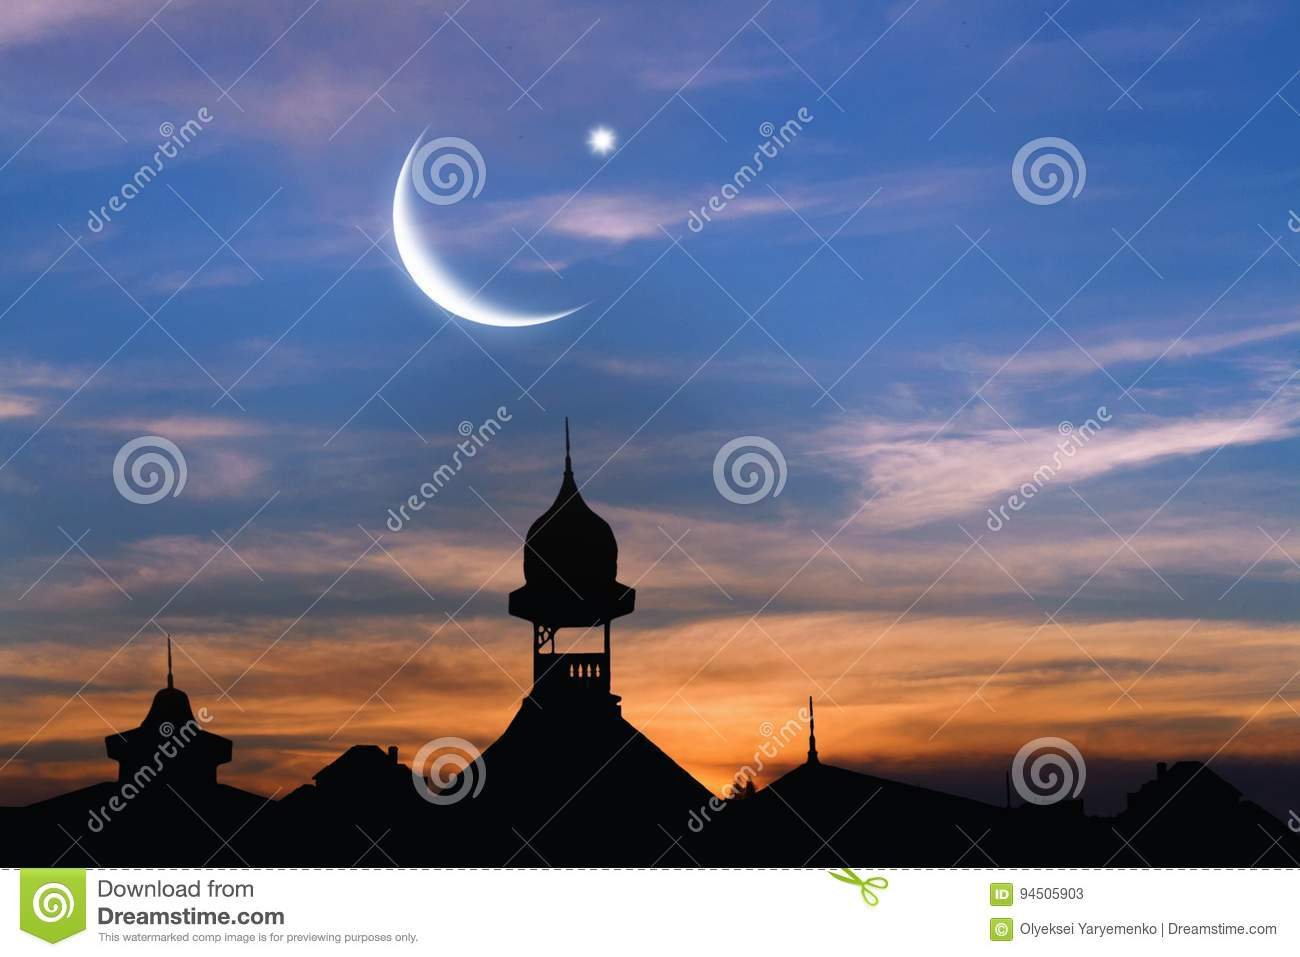 Old City At Sunset Muslim Abstract Greeting Banners Stock Image